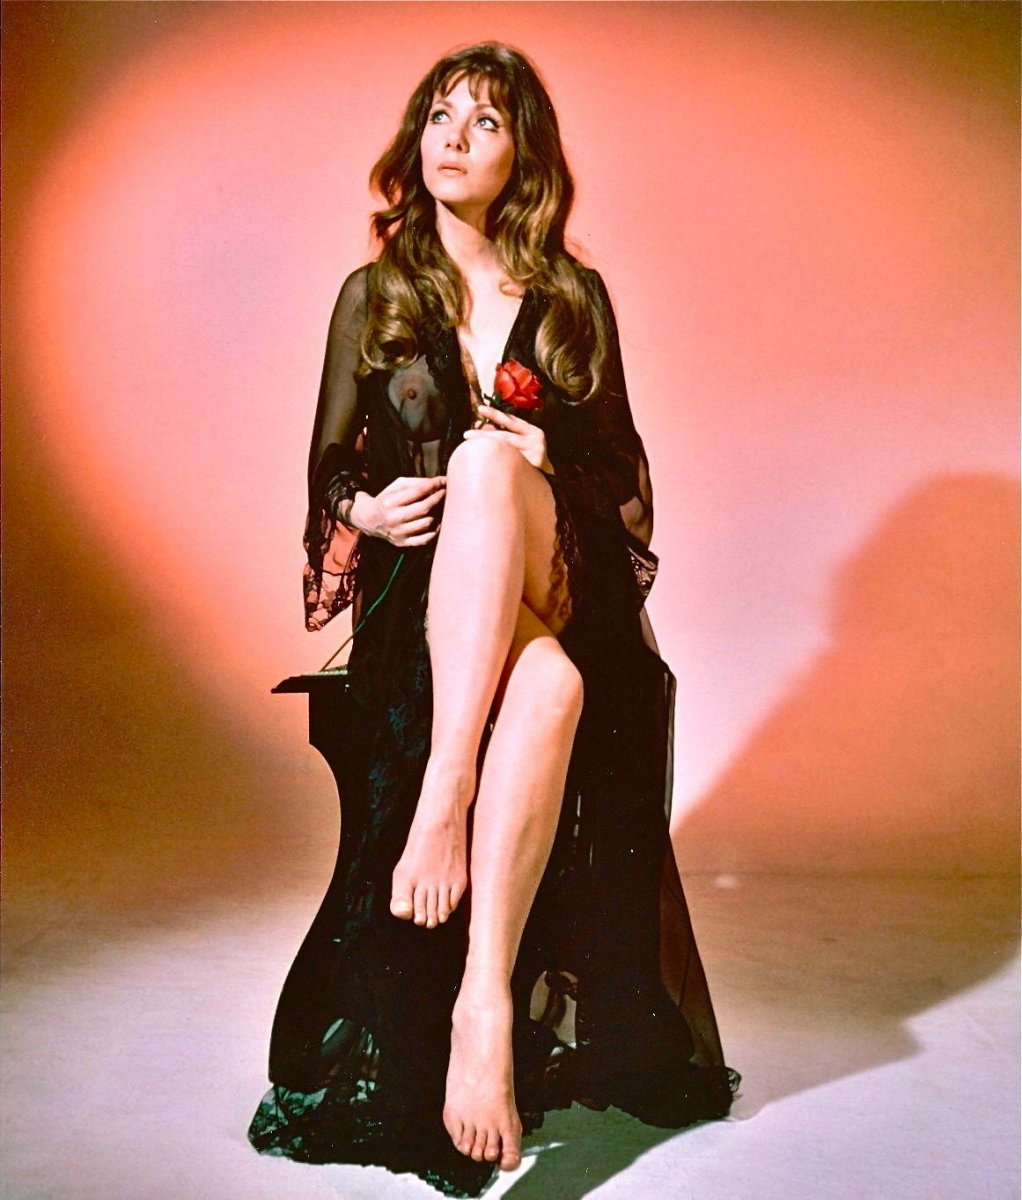 Ingrid Pitt in 'The Vampire Lovers' (1970)